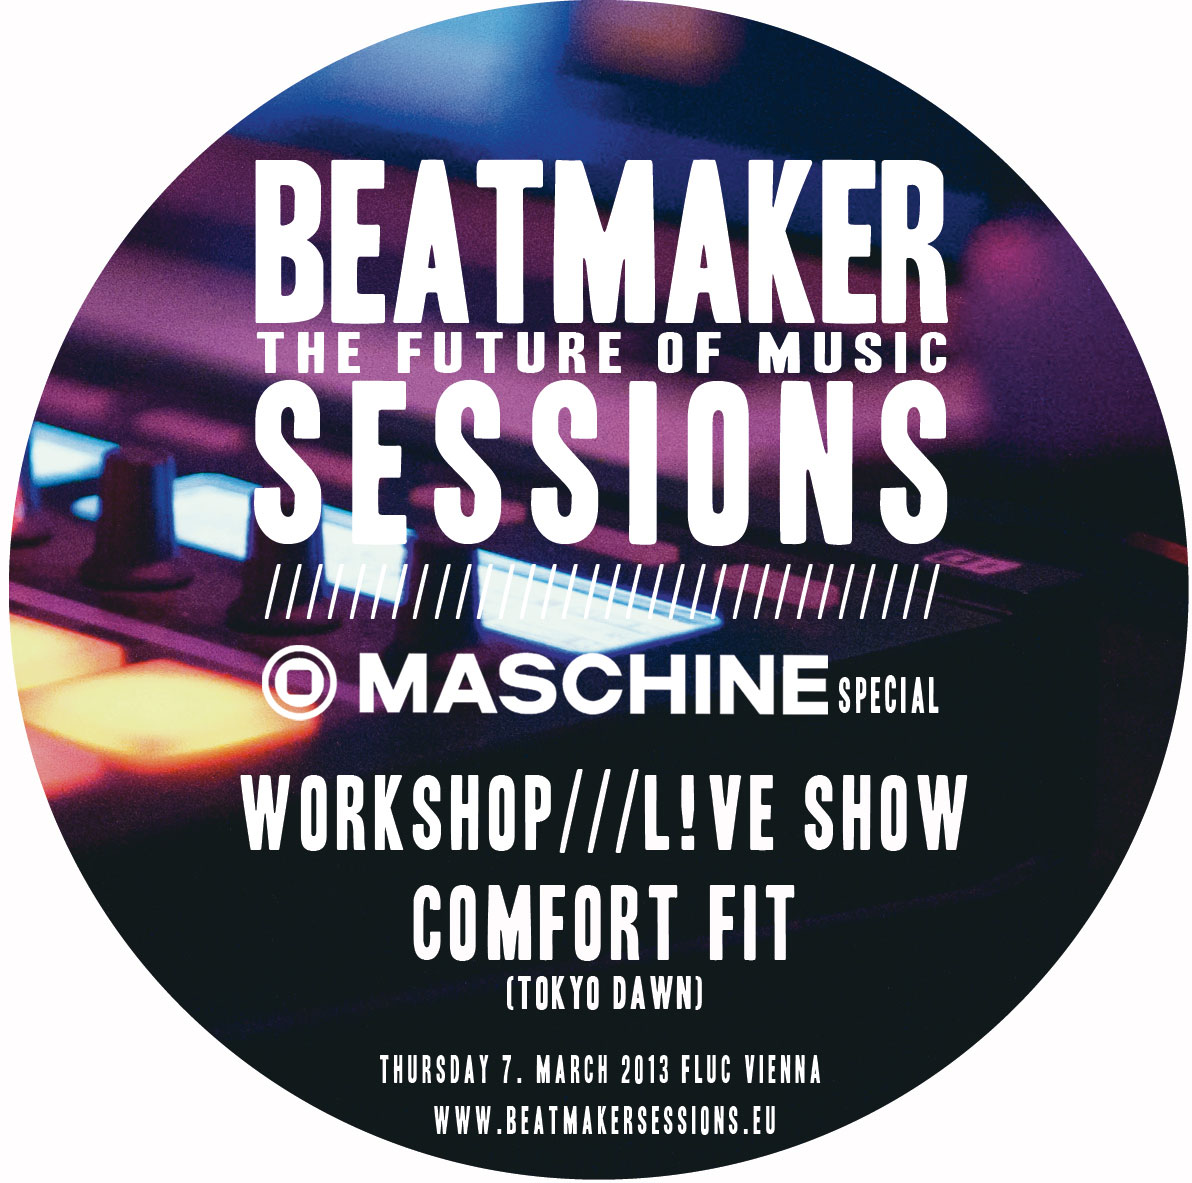 Beatmaker Sessions x MASCHINE Special